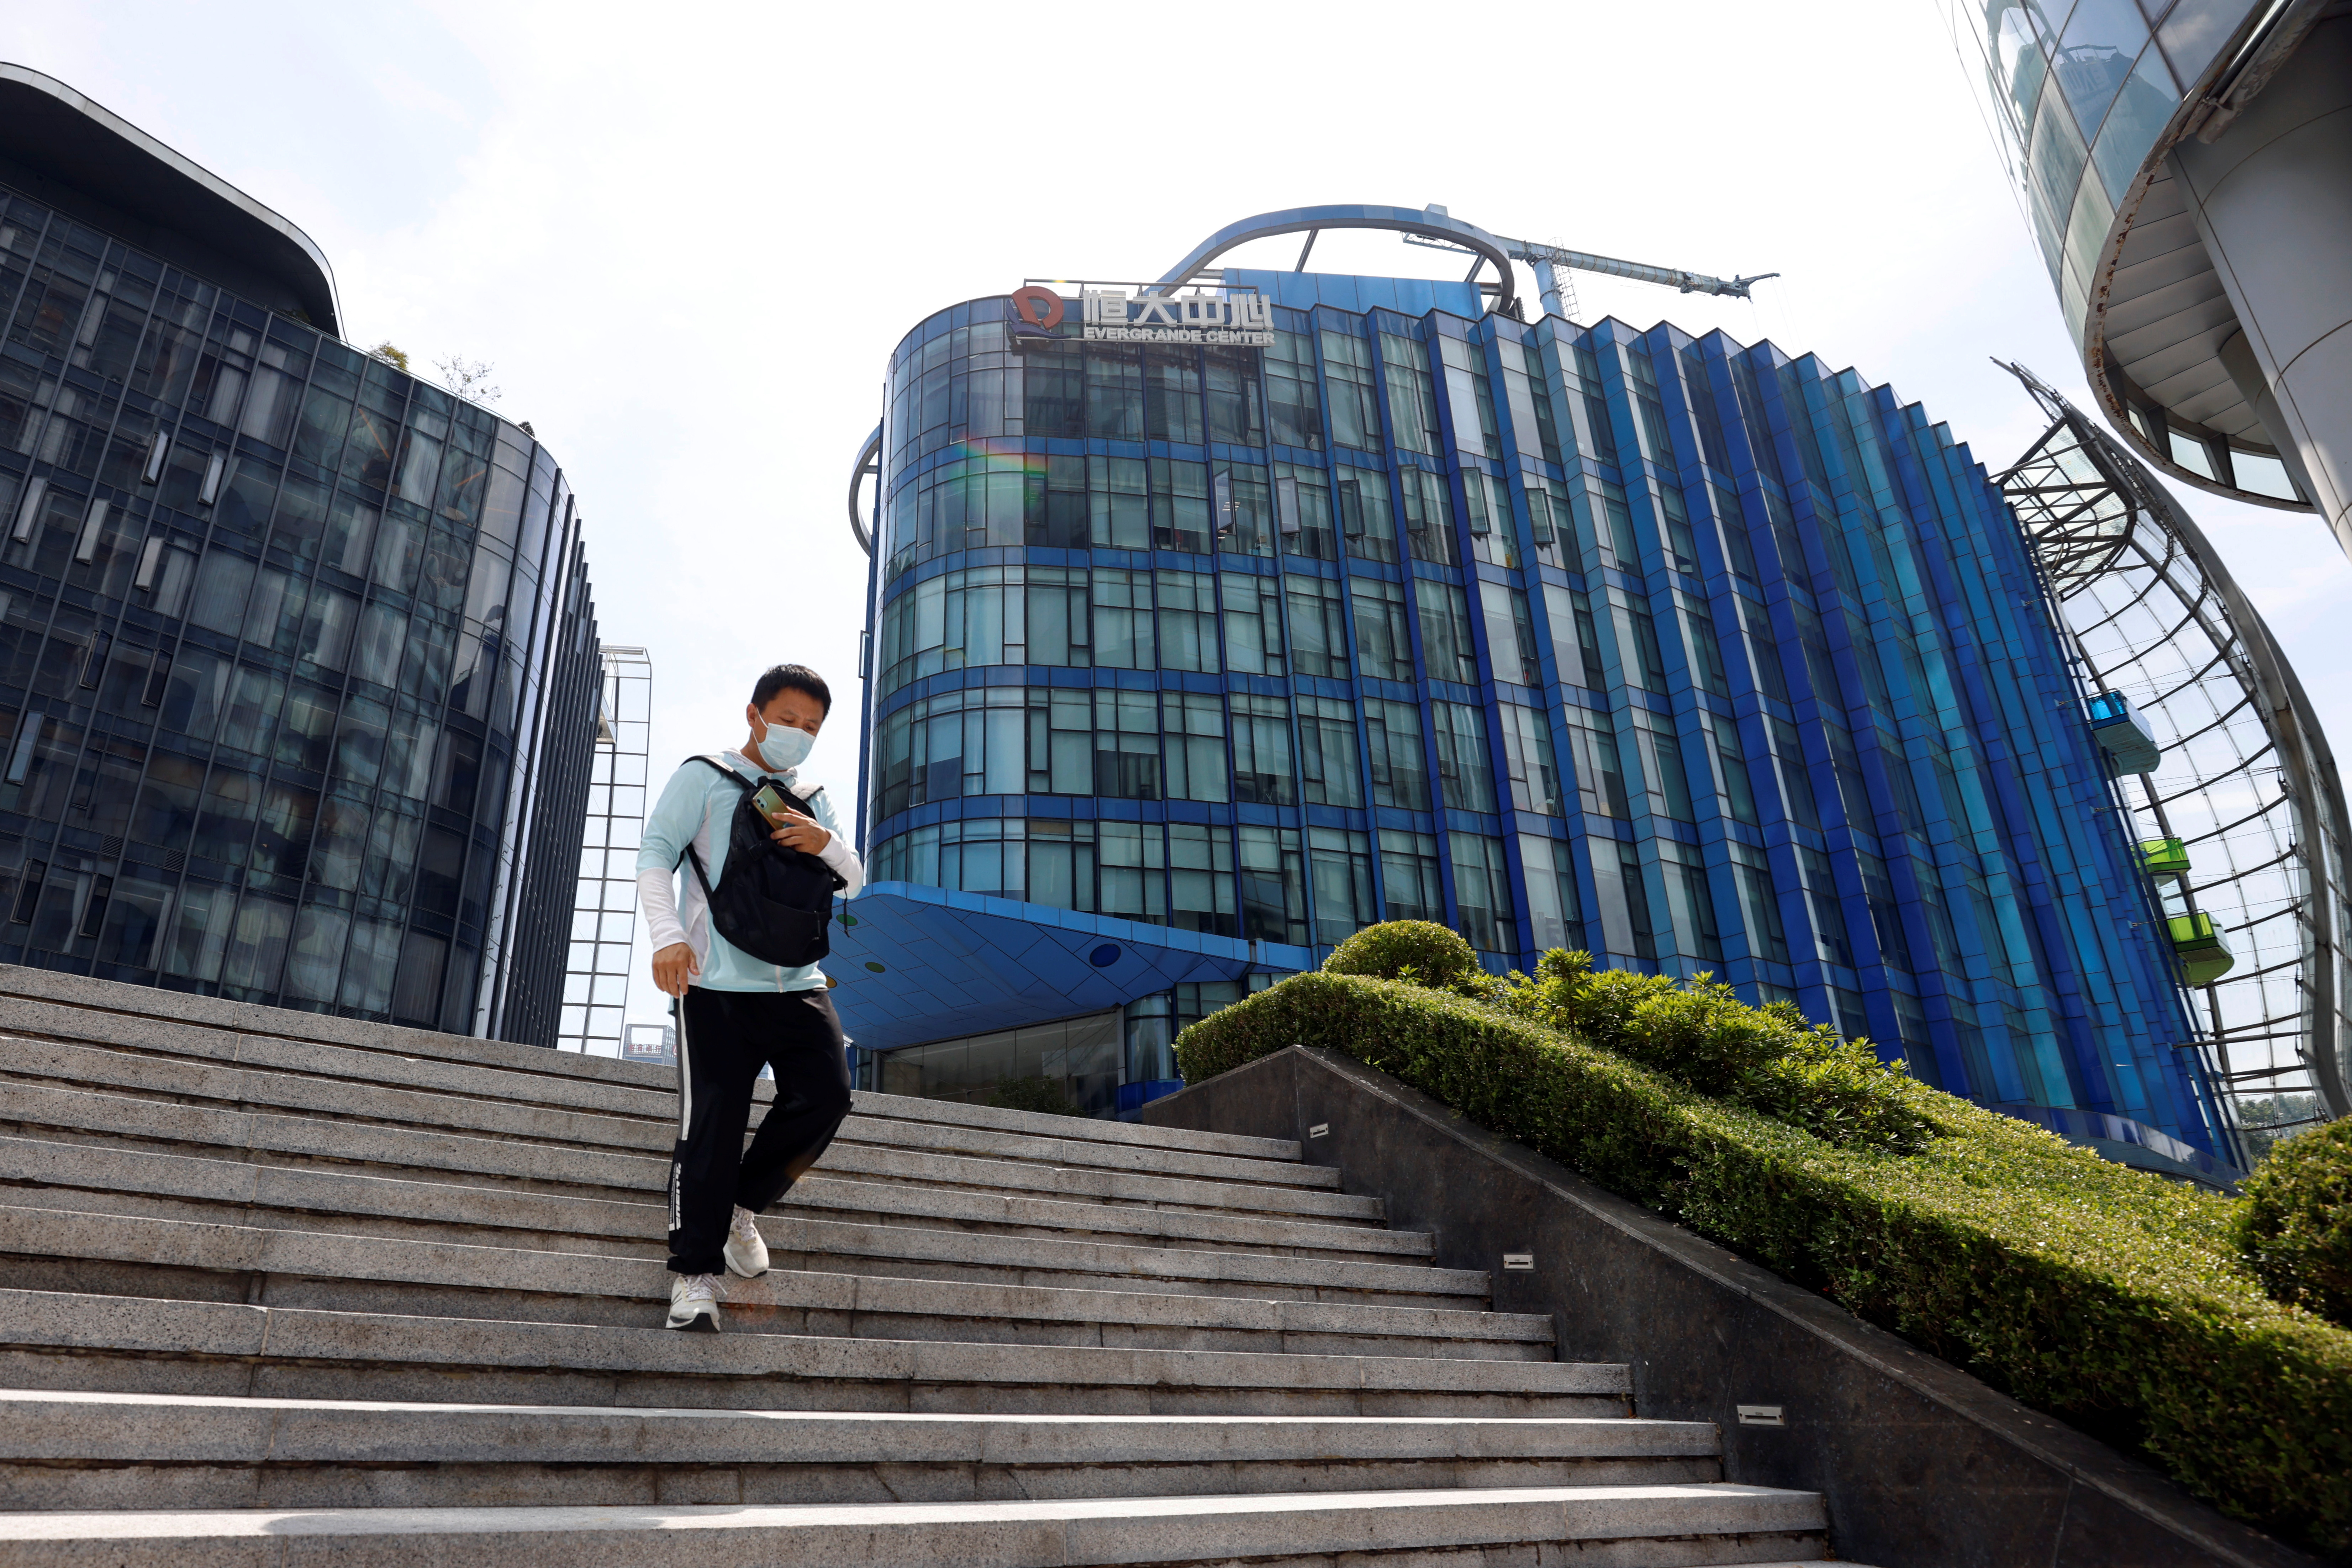 A man walks past the Evergrande Center of China Evergrande Group in Shanghai, China, September 24, 2021. REUTERS/Aly Song